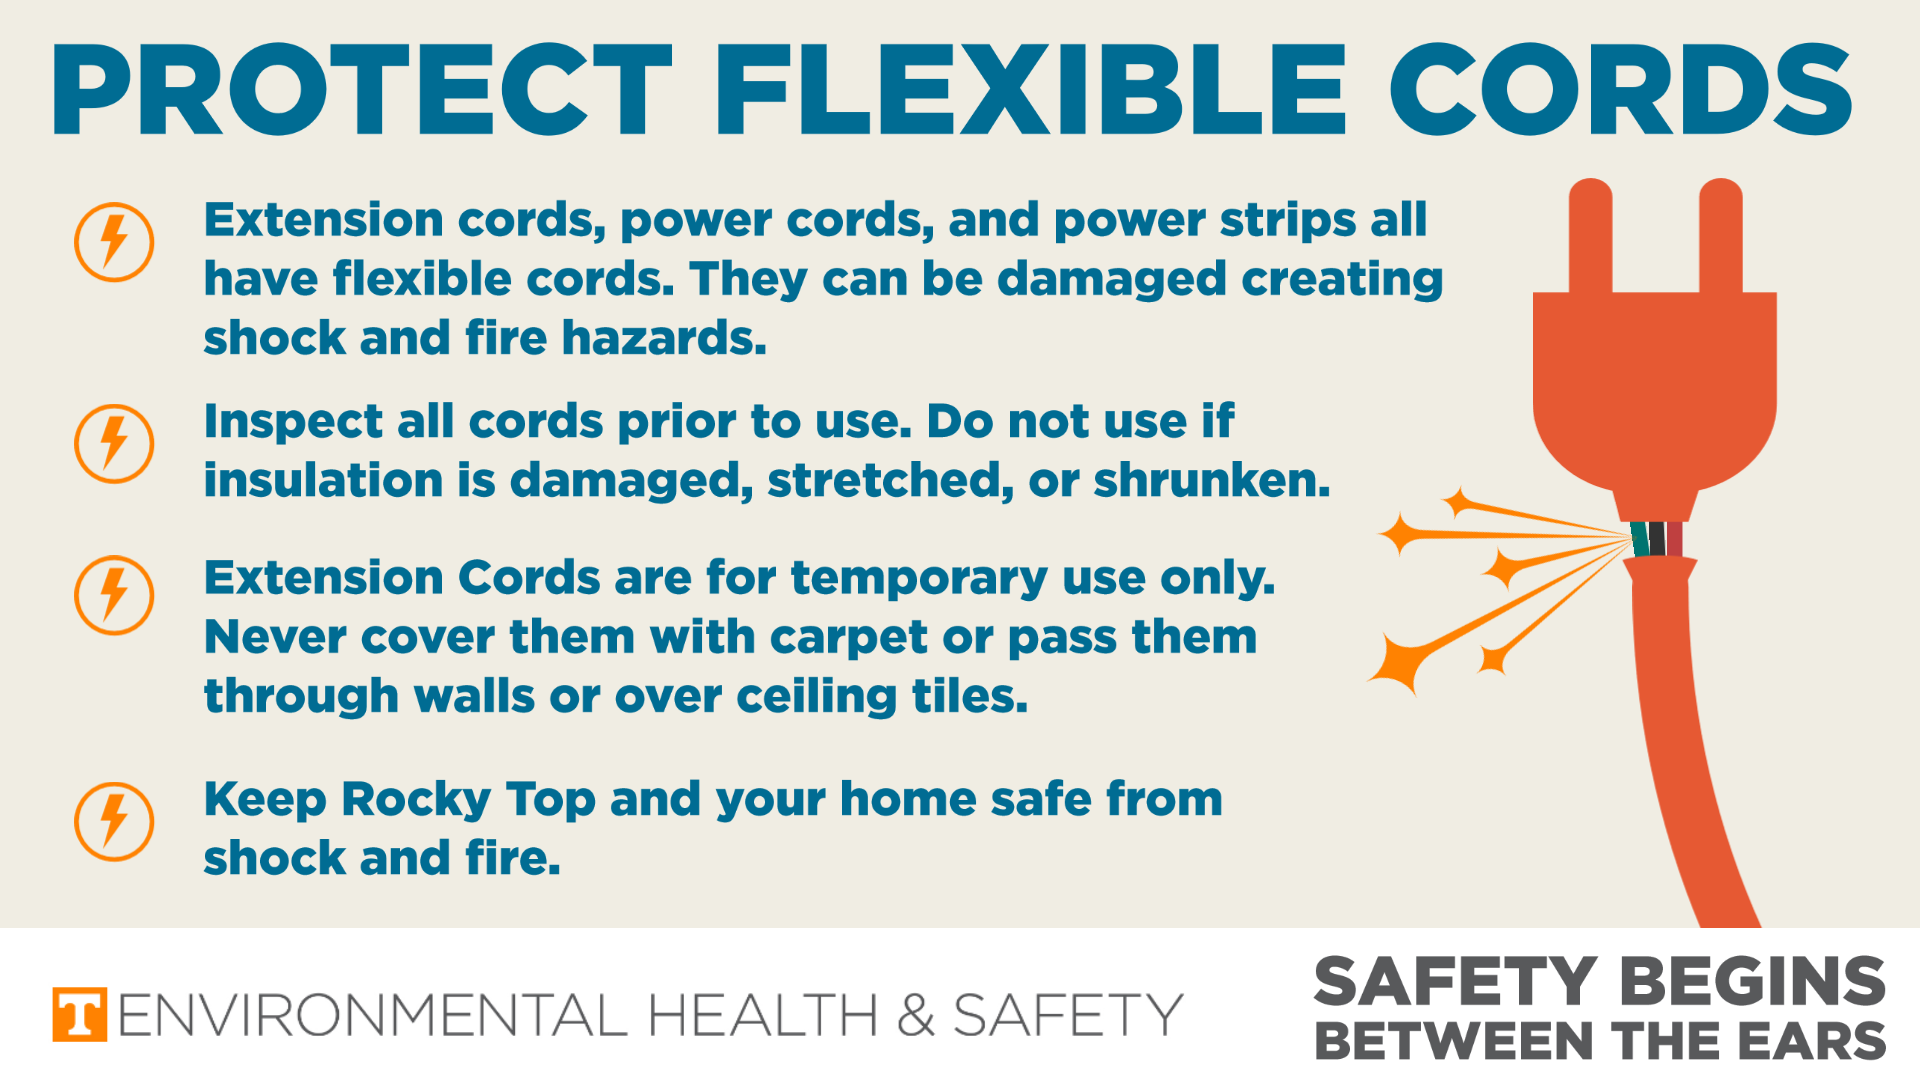 Infographic with graphic of a electrical cord and plug with damage insulation and sparks flying out. The graphic lists ways to protect flexible cords including: The can cause shock and fire hazards. Inspect them for insulation that is damaged stretched, or shrunken. They are for temporary use and should never be covered with carpet or passed through walls or ceiling tiles.